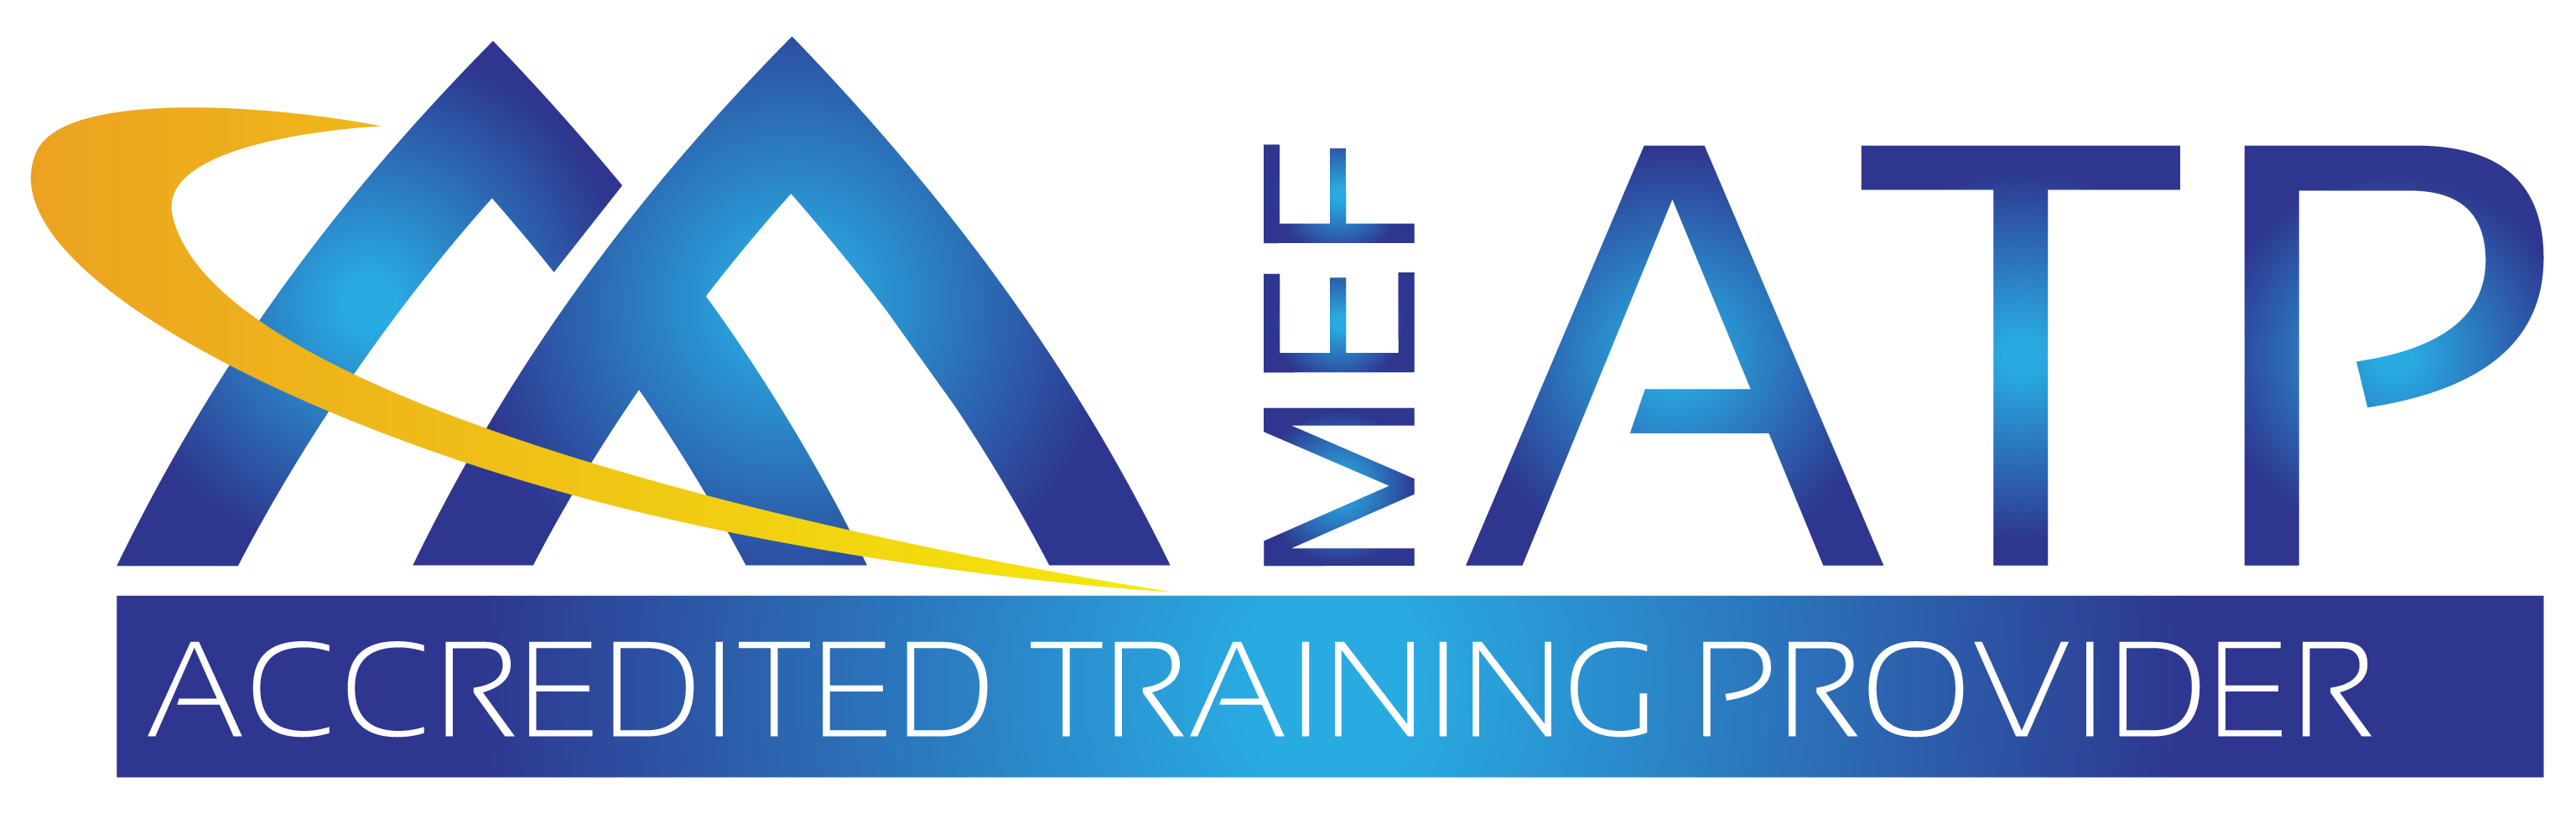 MEF Accredited Training Provider